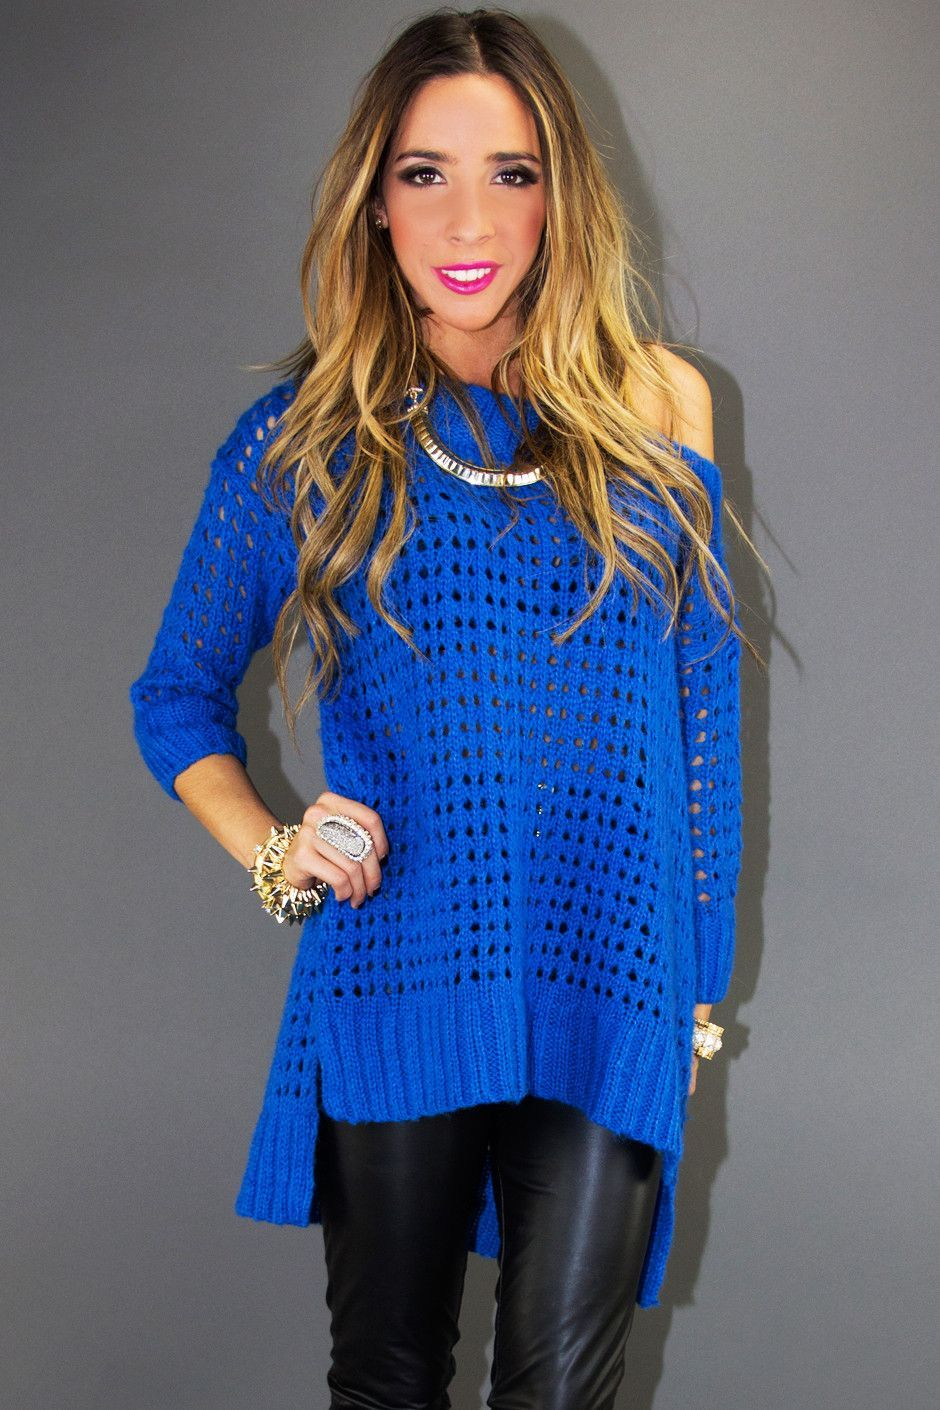 OVERSIZED SWEATER - Electric Royal Blue $60.00 | Cozy Sweaters ...